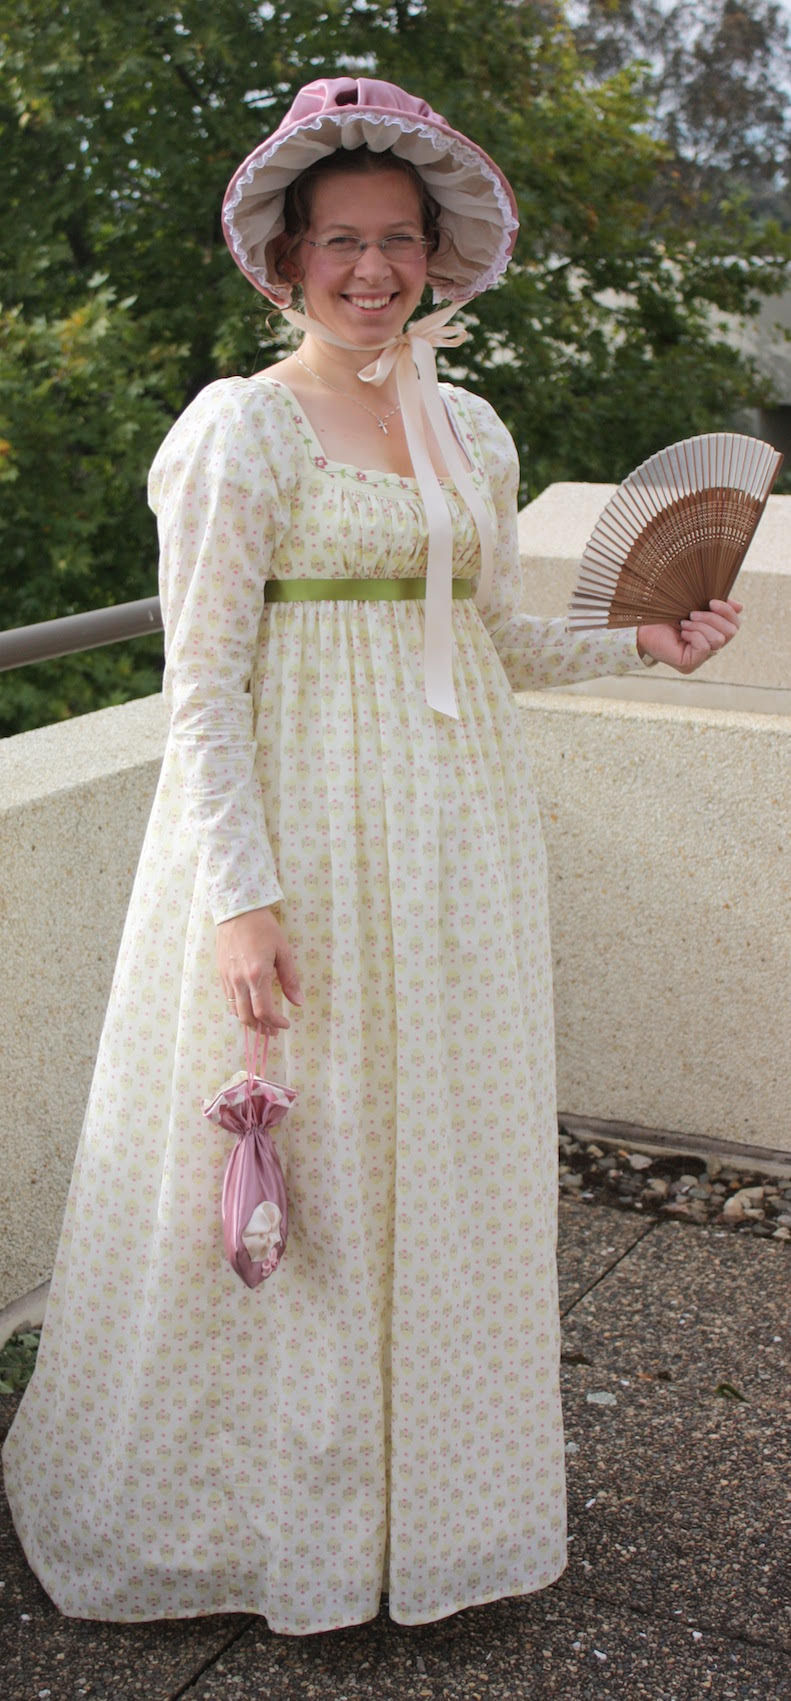 Kelly from Tea in a Teacup creates her own period costumes